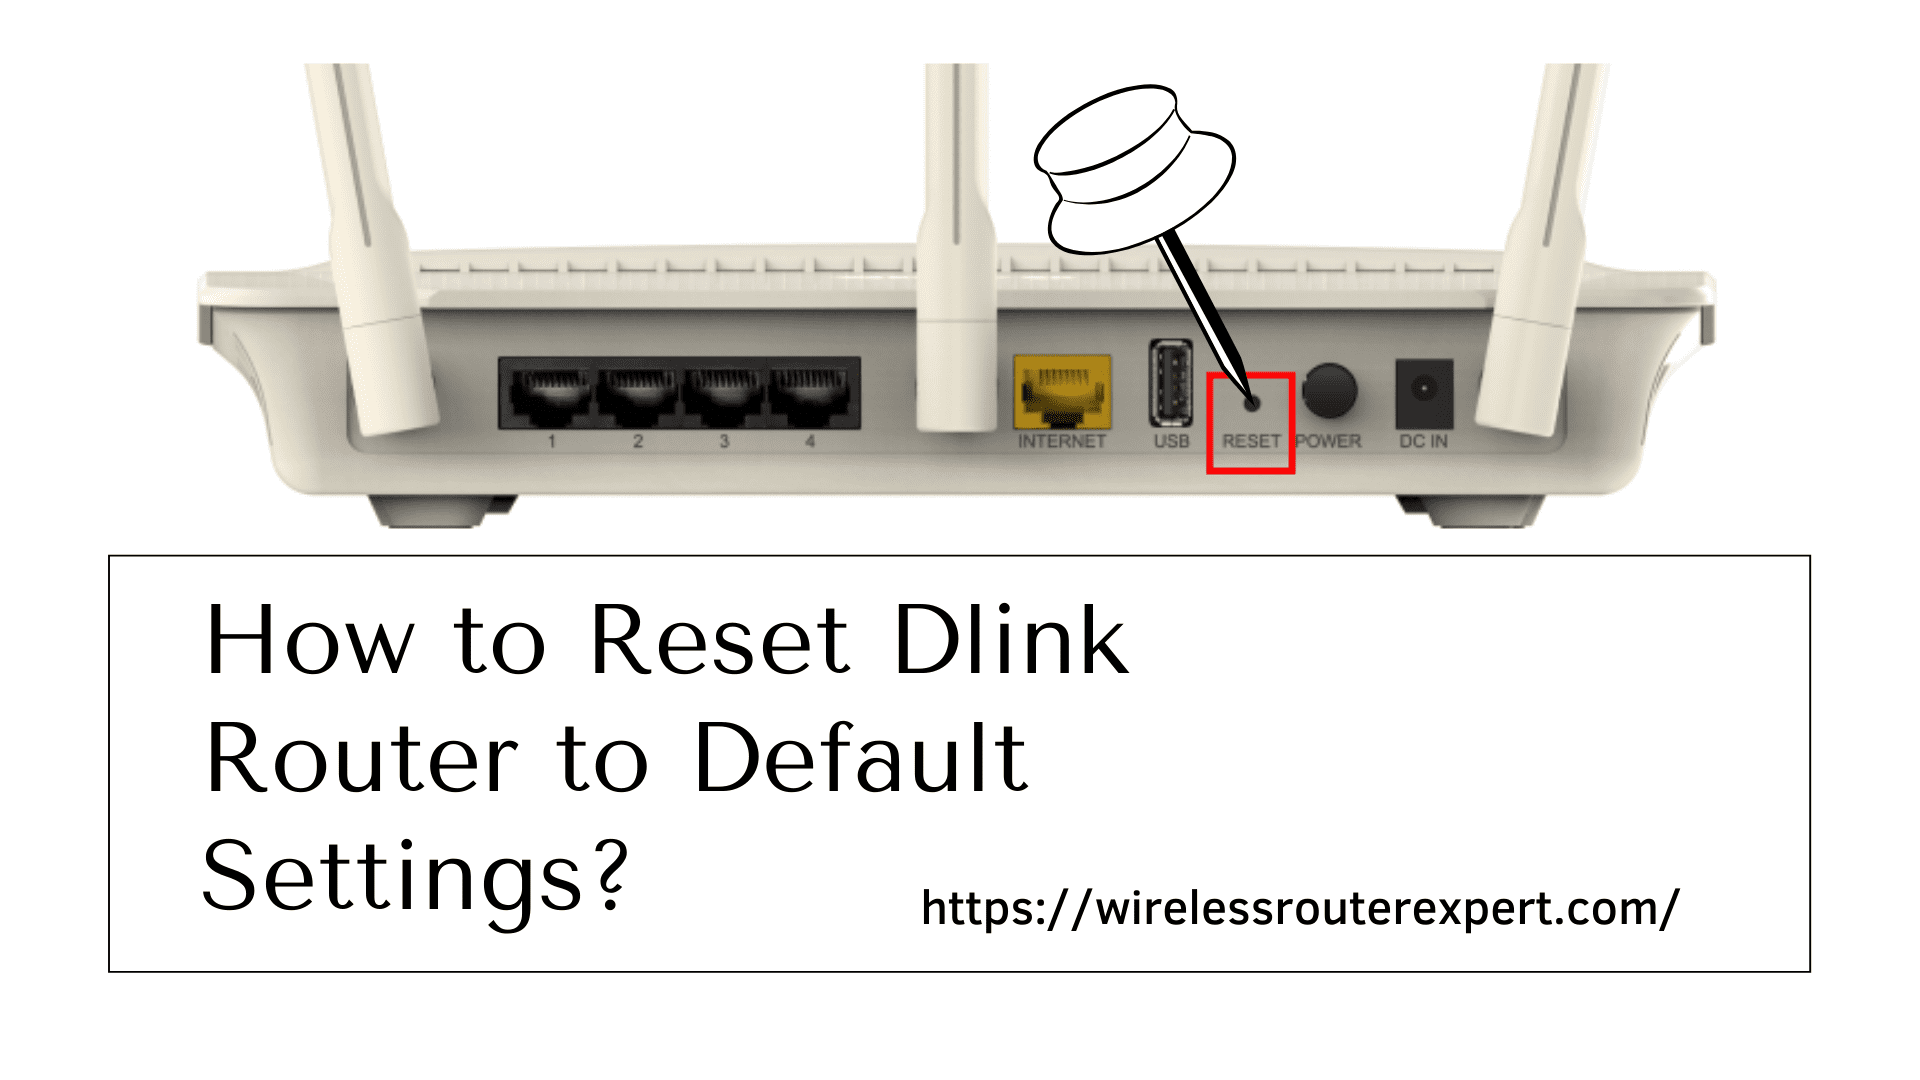 How to Reset Dlink Router to Default Settings?